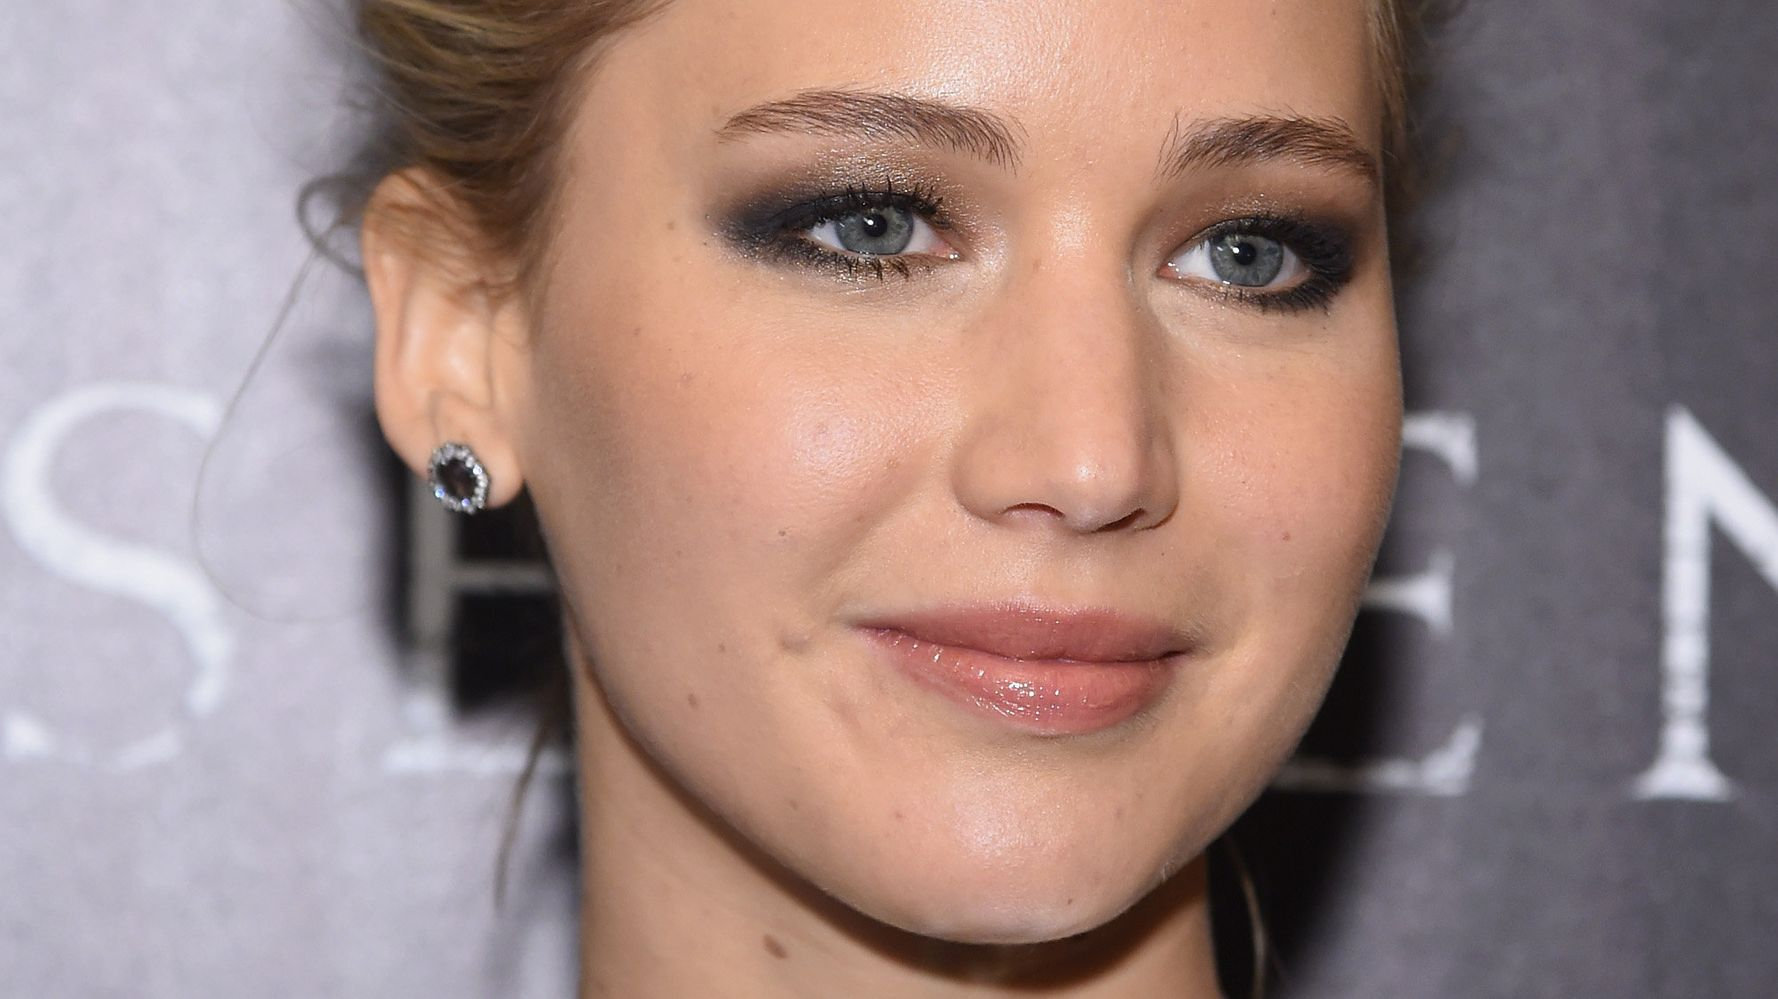 the most majestic makeup for grey eyes | huffpost life